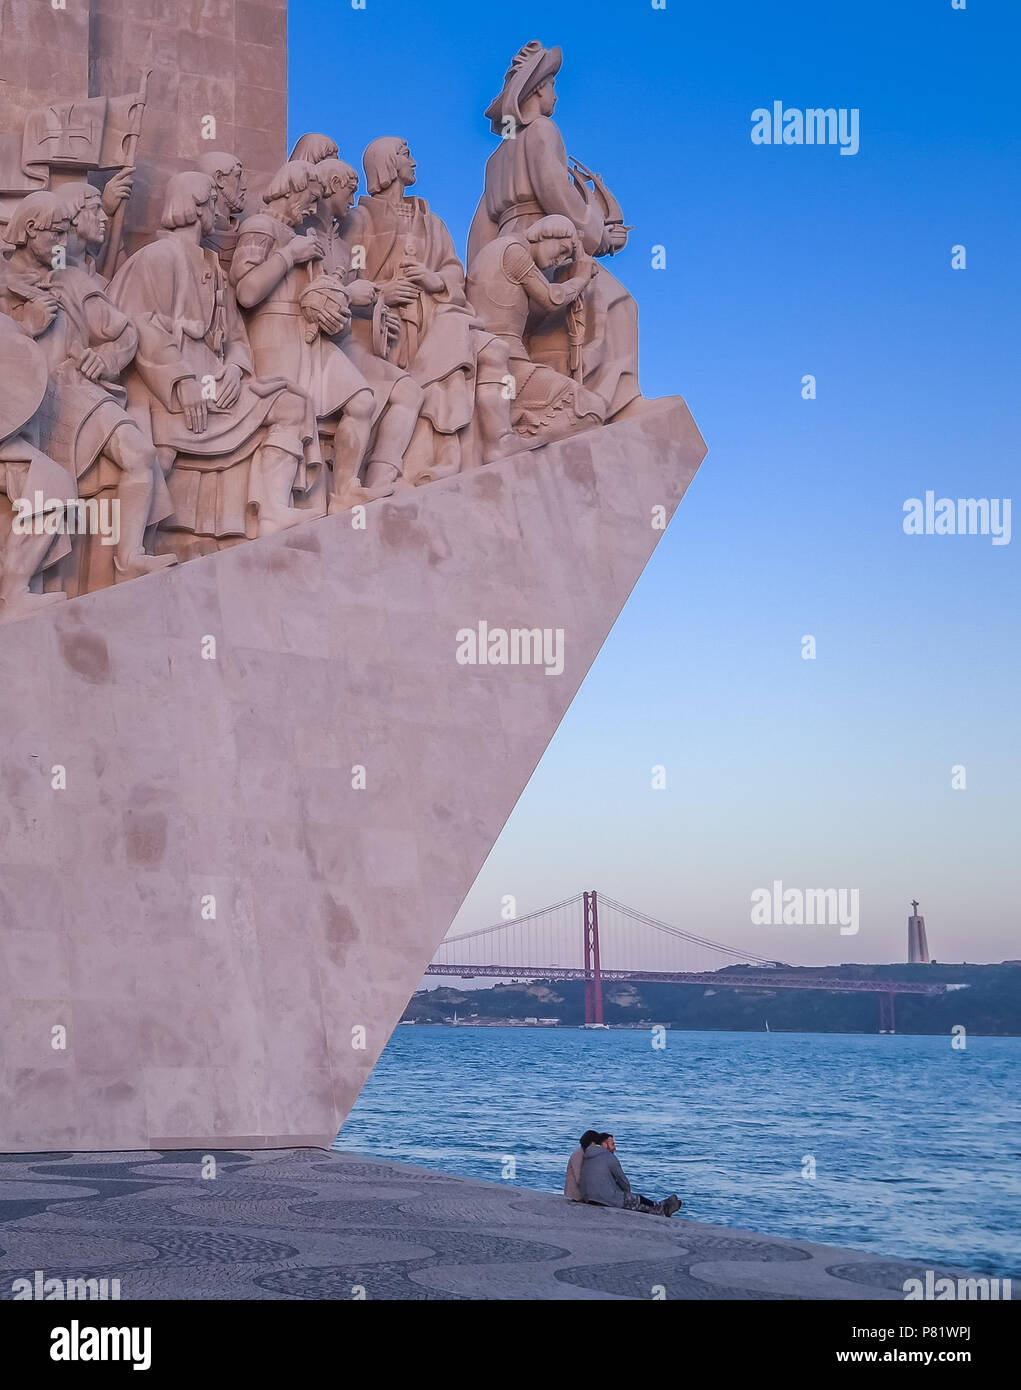 Lisbon, Portugal, monument of the discoveries, Padrão dos Descobrimentos - Stock Image